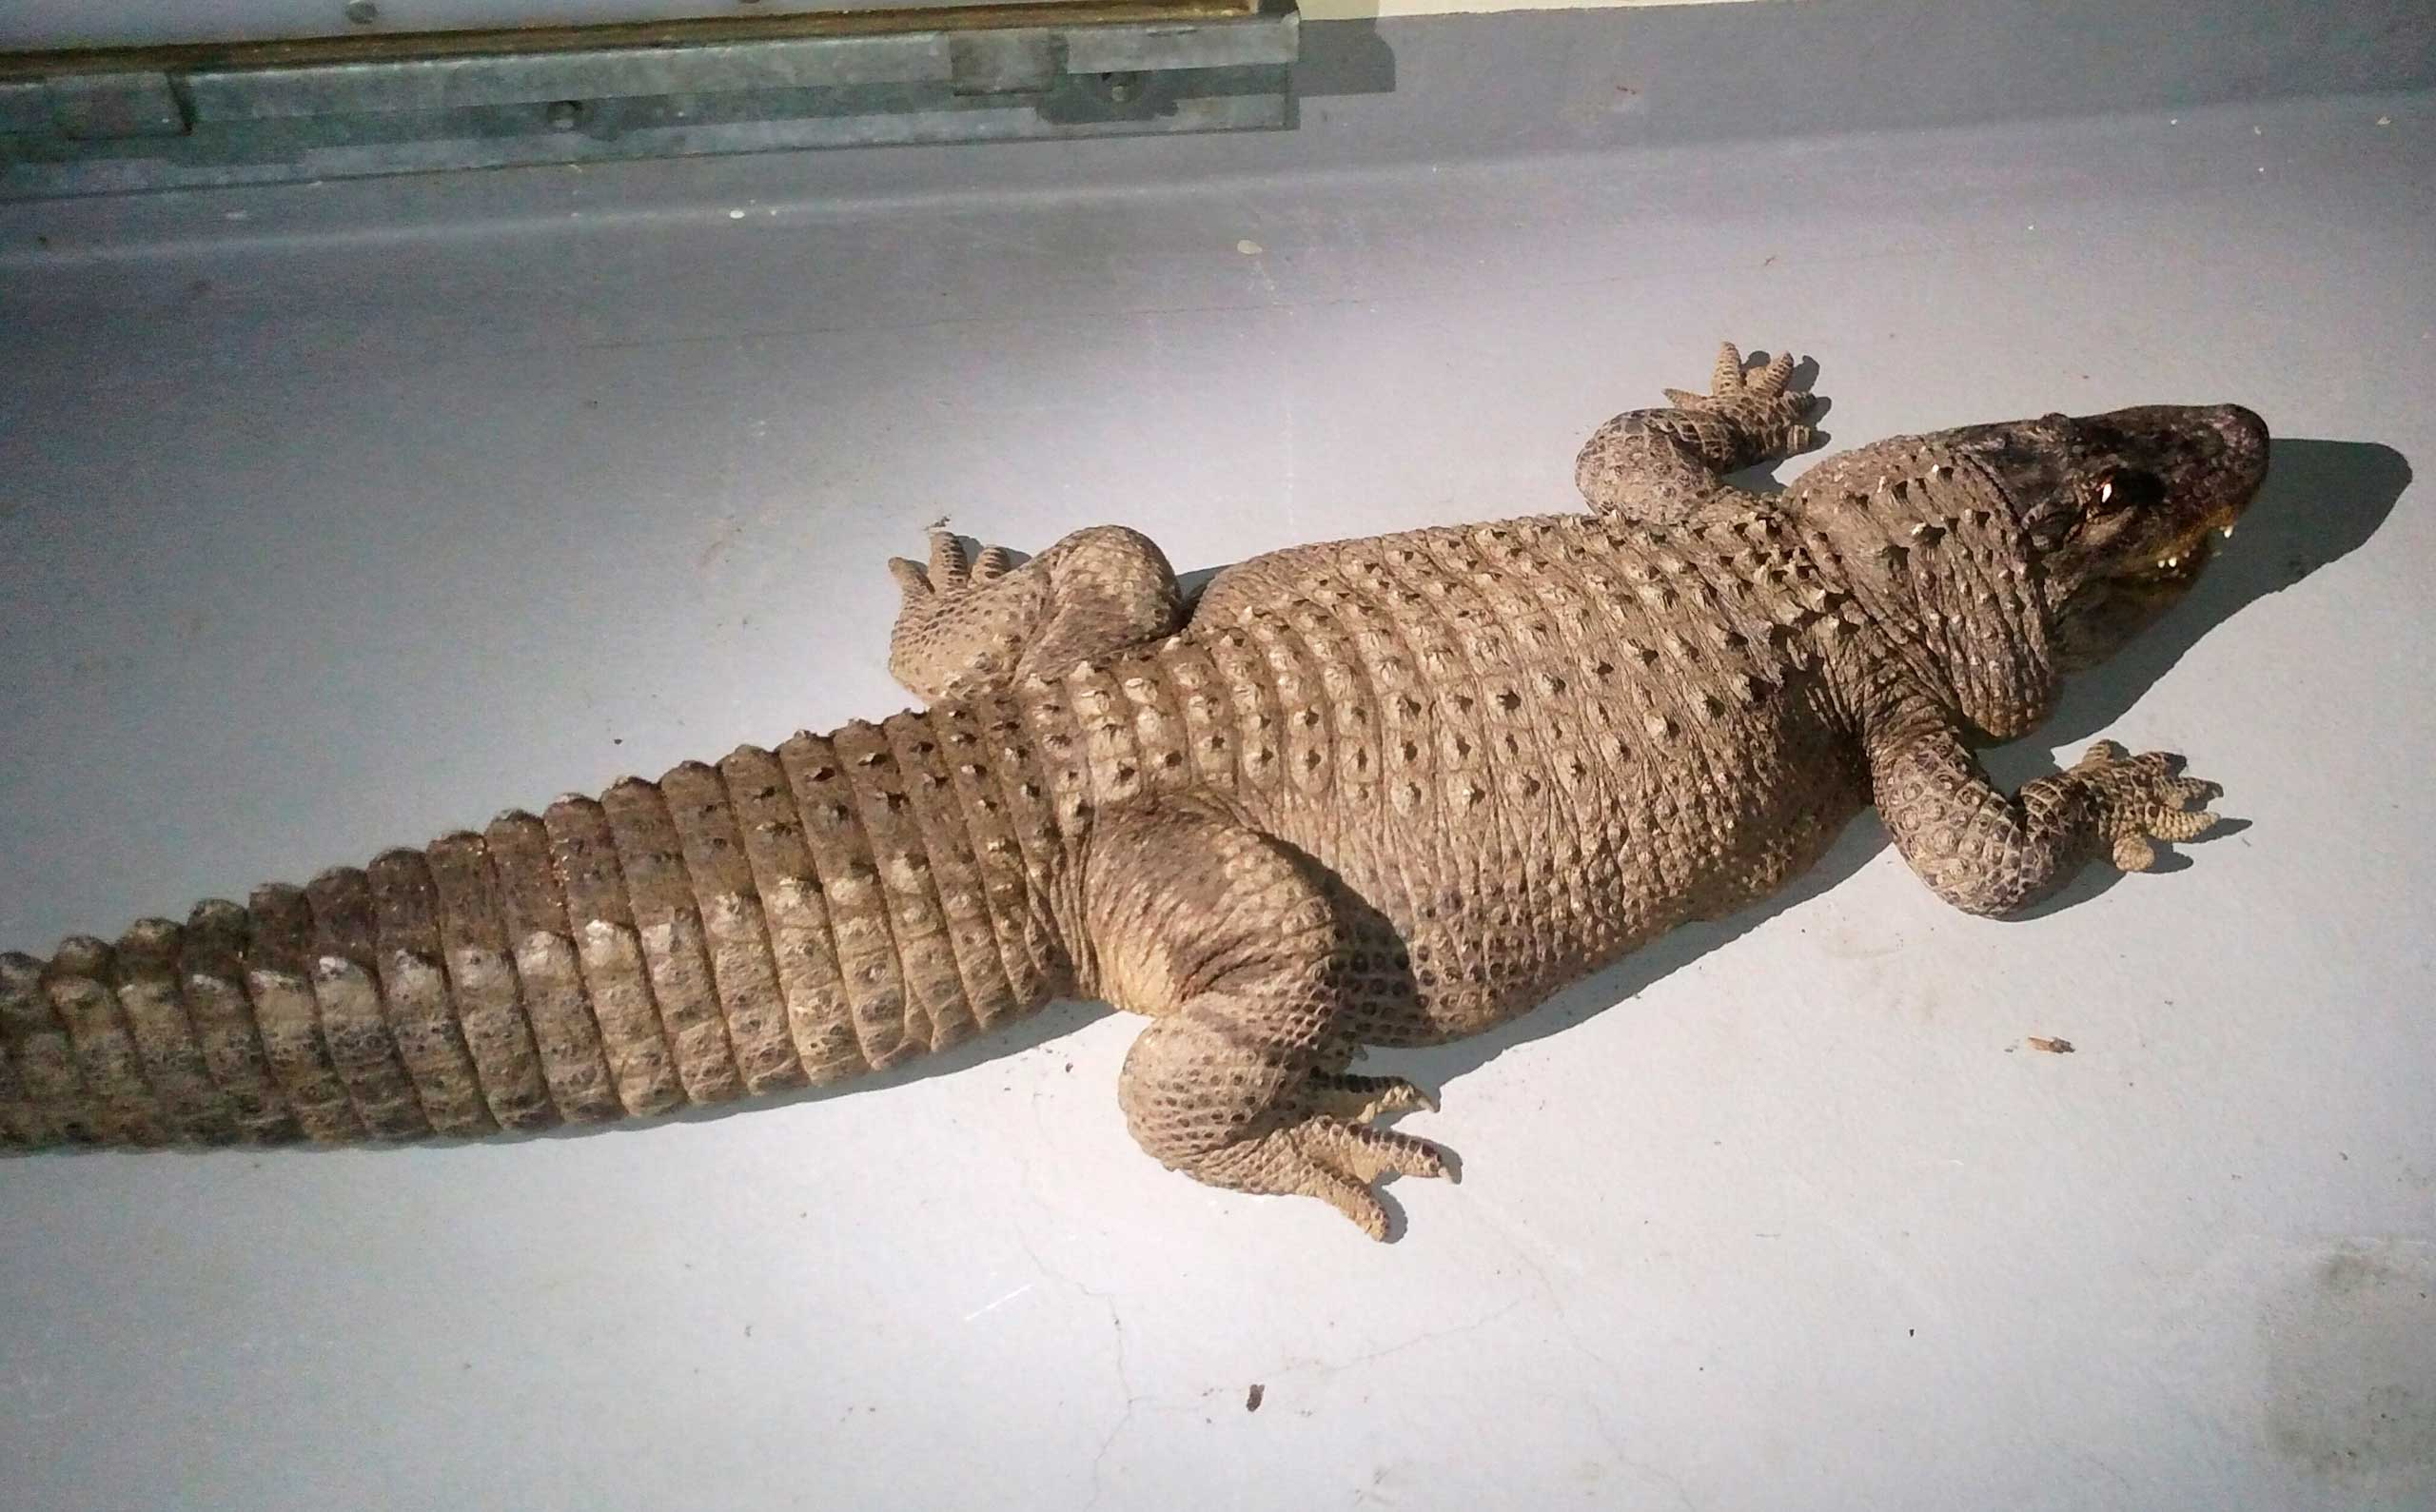 An 8-foot alligator was found in a box with two dead cats in the backyard of a home in the Van Nuys area of Los Angeles.